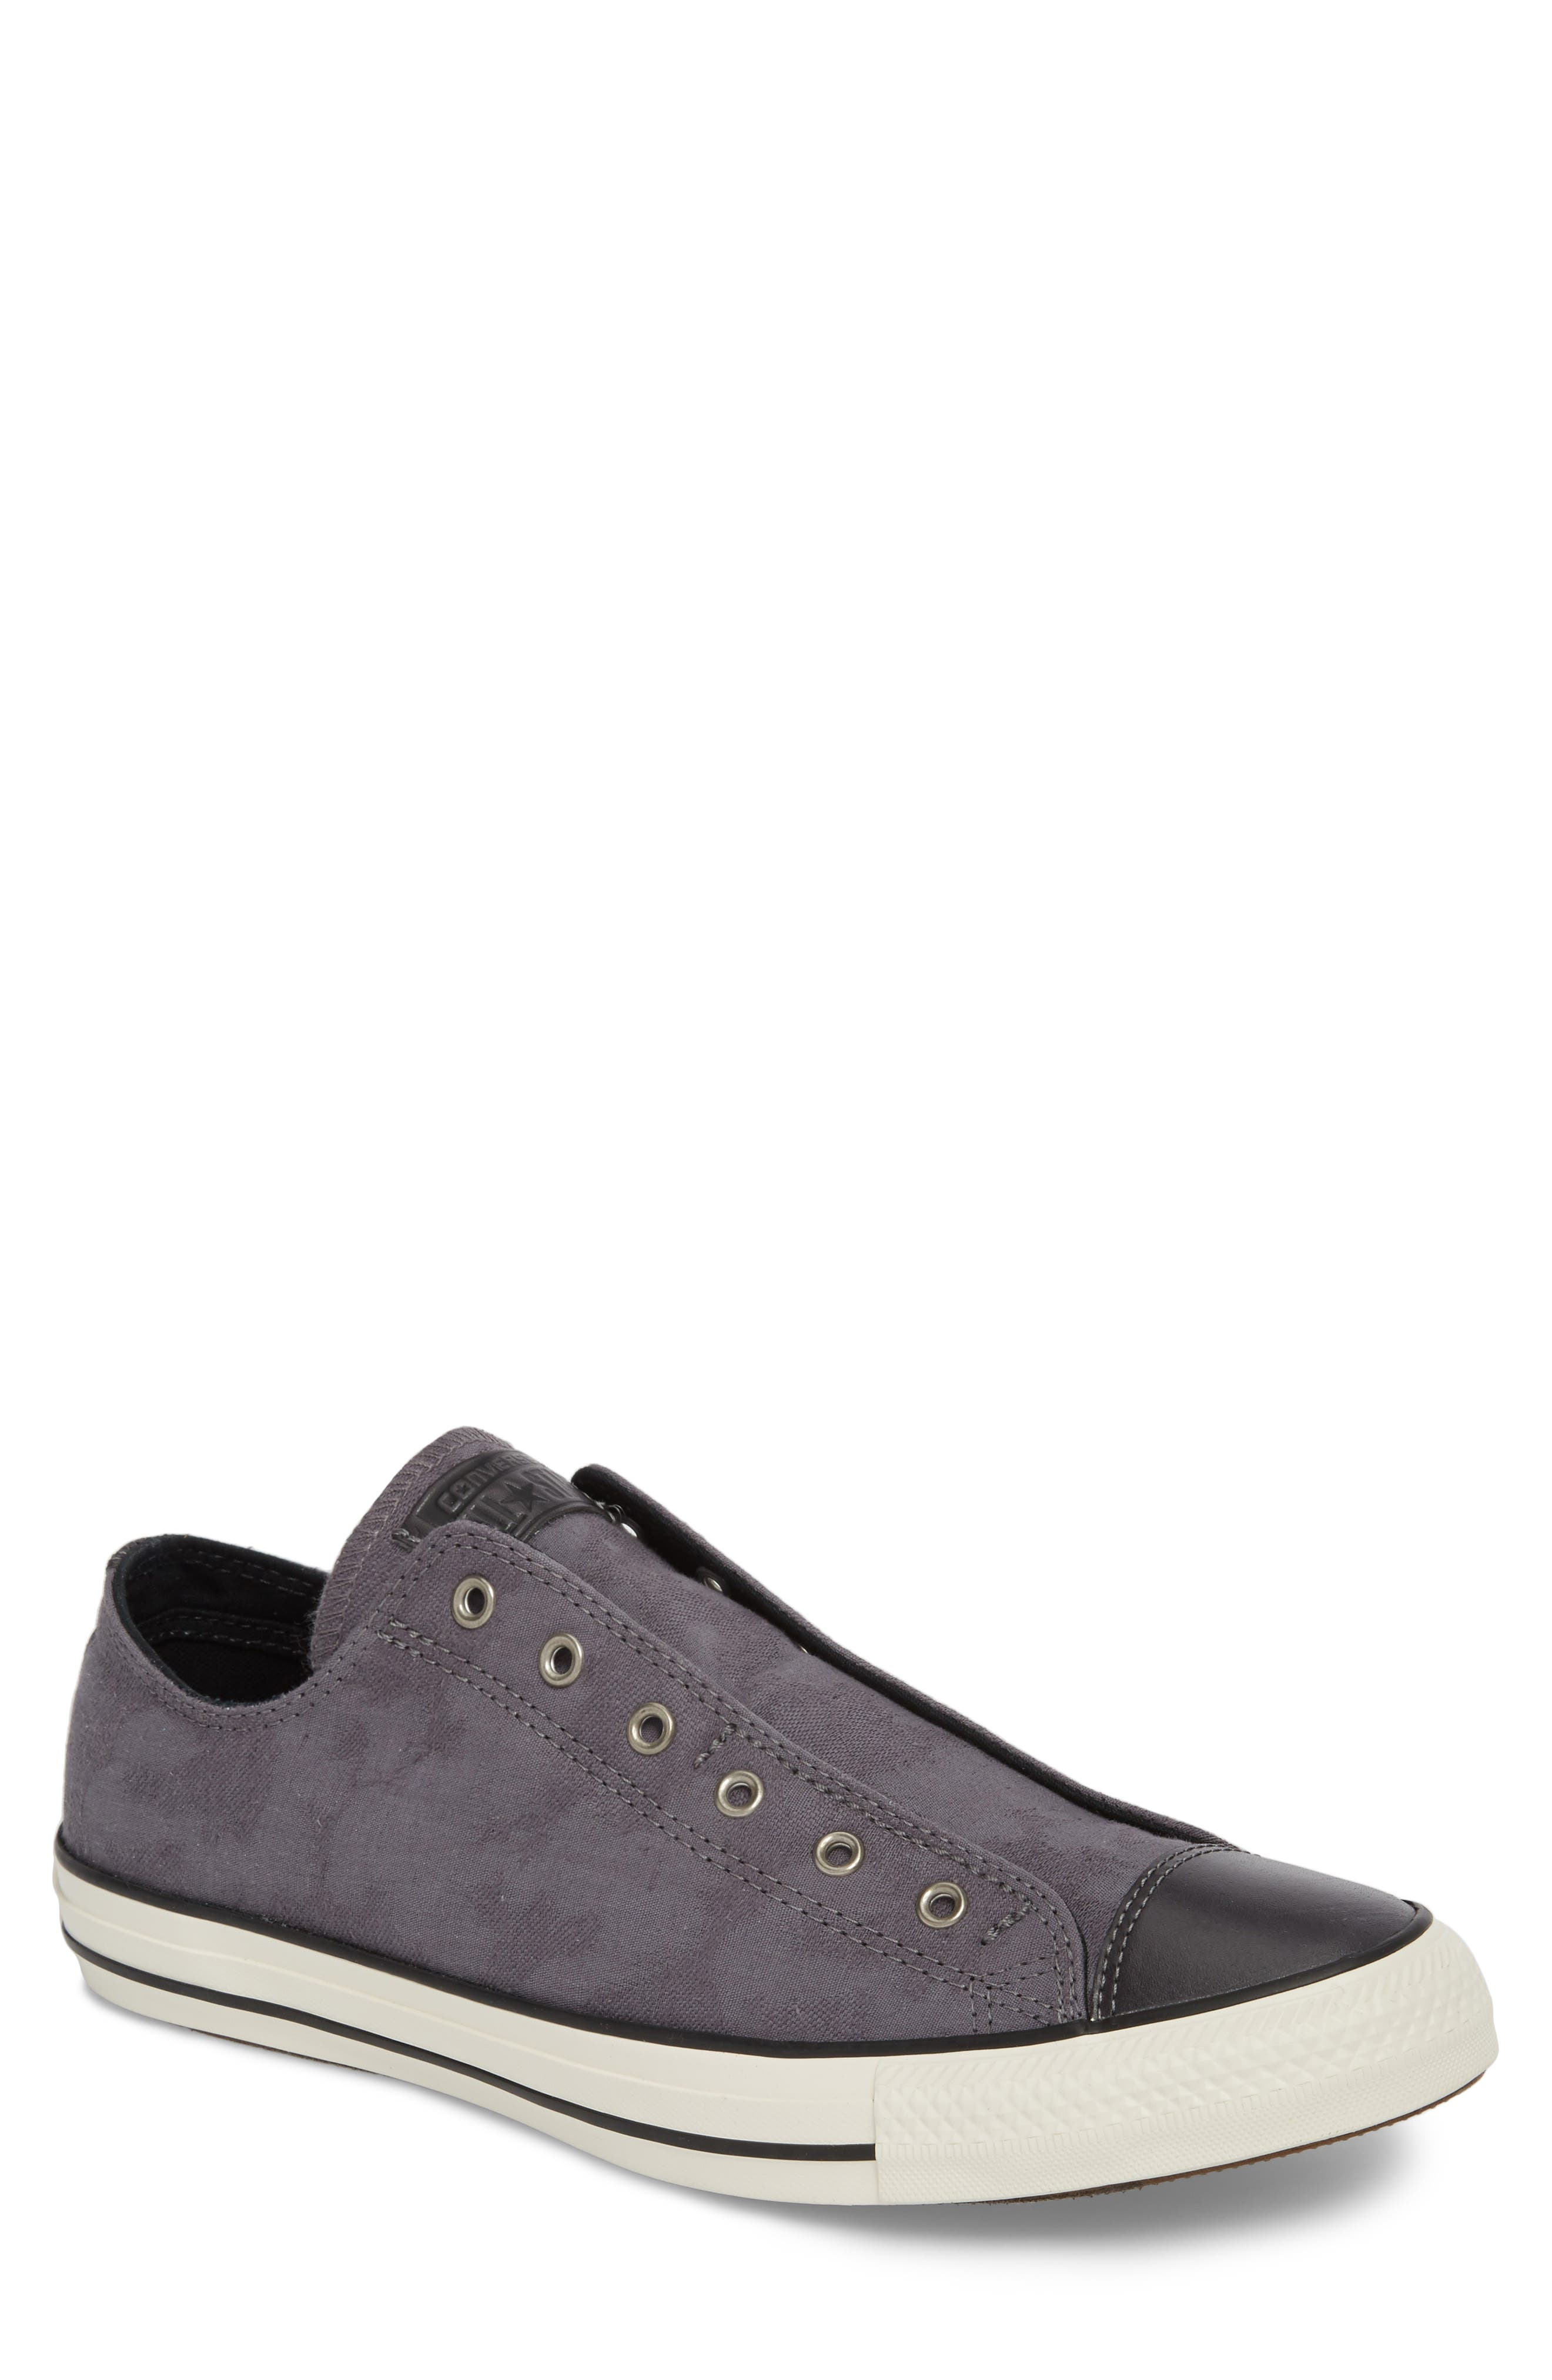 Chuck Taylor<sup>®</sup> All Star<sup>®</sup> Laceless Low Top Sneaker,                             Main thumbnail 1, color,                             THUNDER